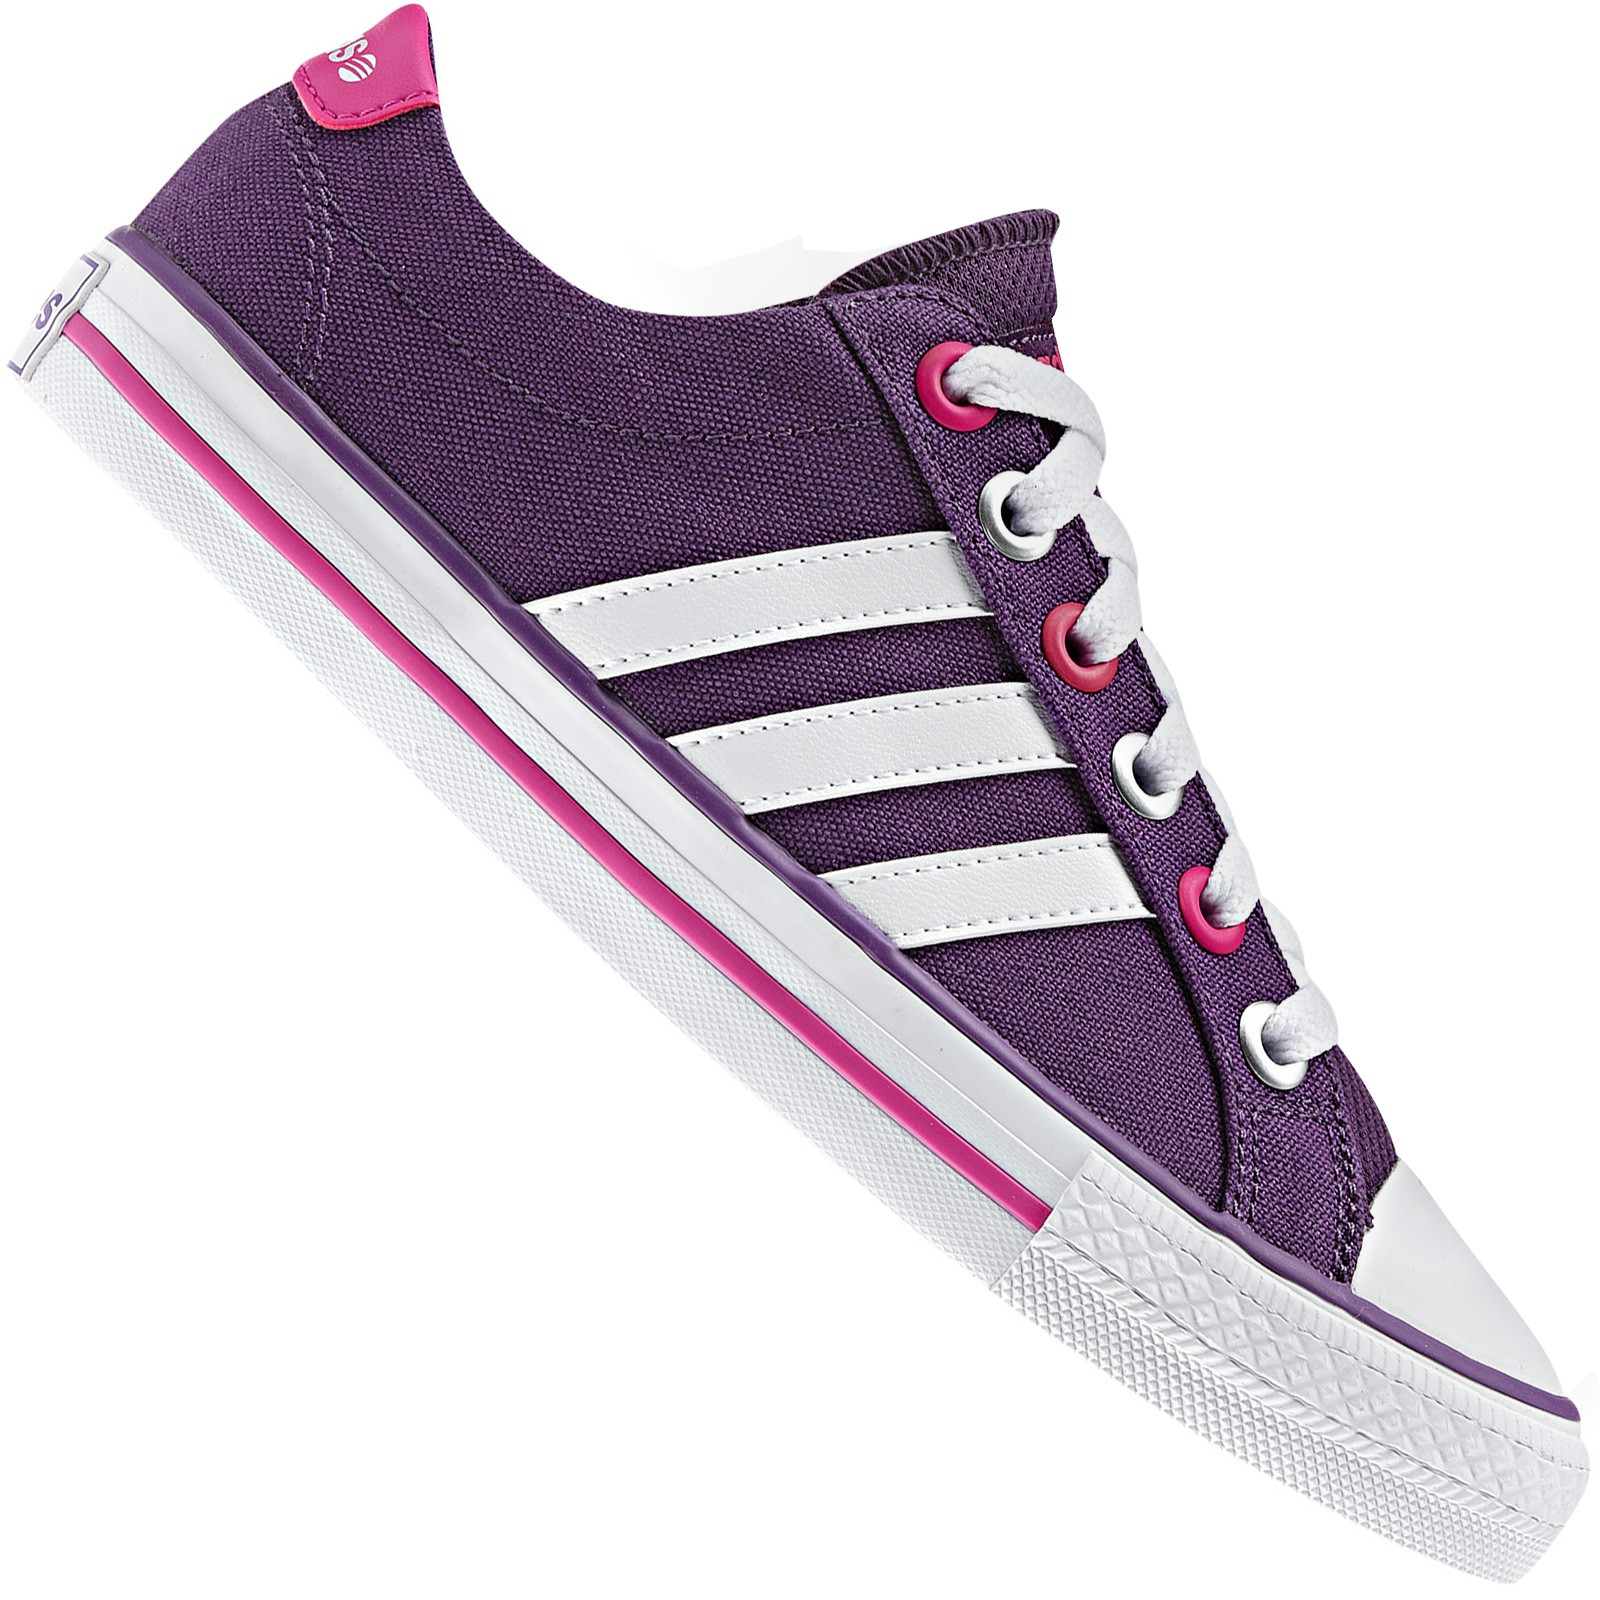 Details about Adidas Neo Label Canvas Vl 3 Stripes Trainers Lifestyle Shoes Purple Pink White